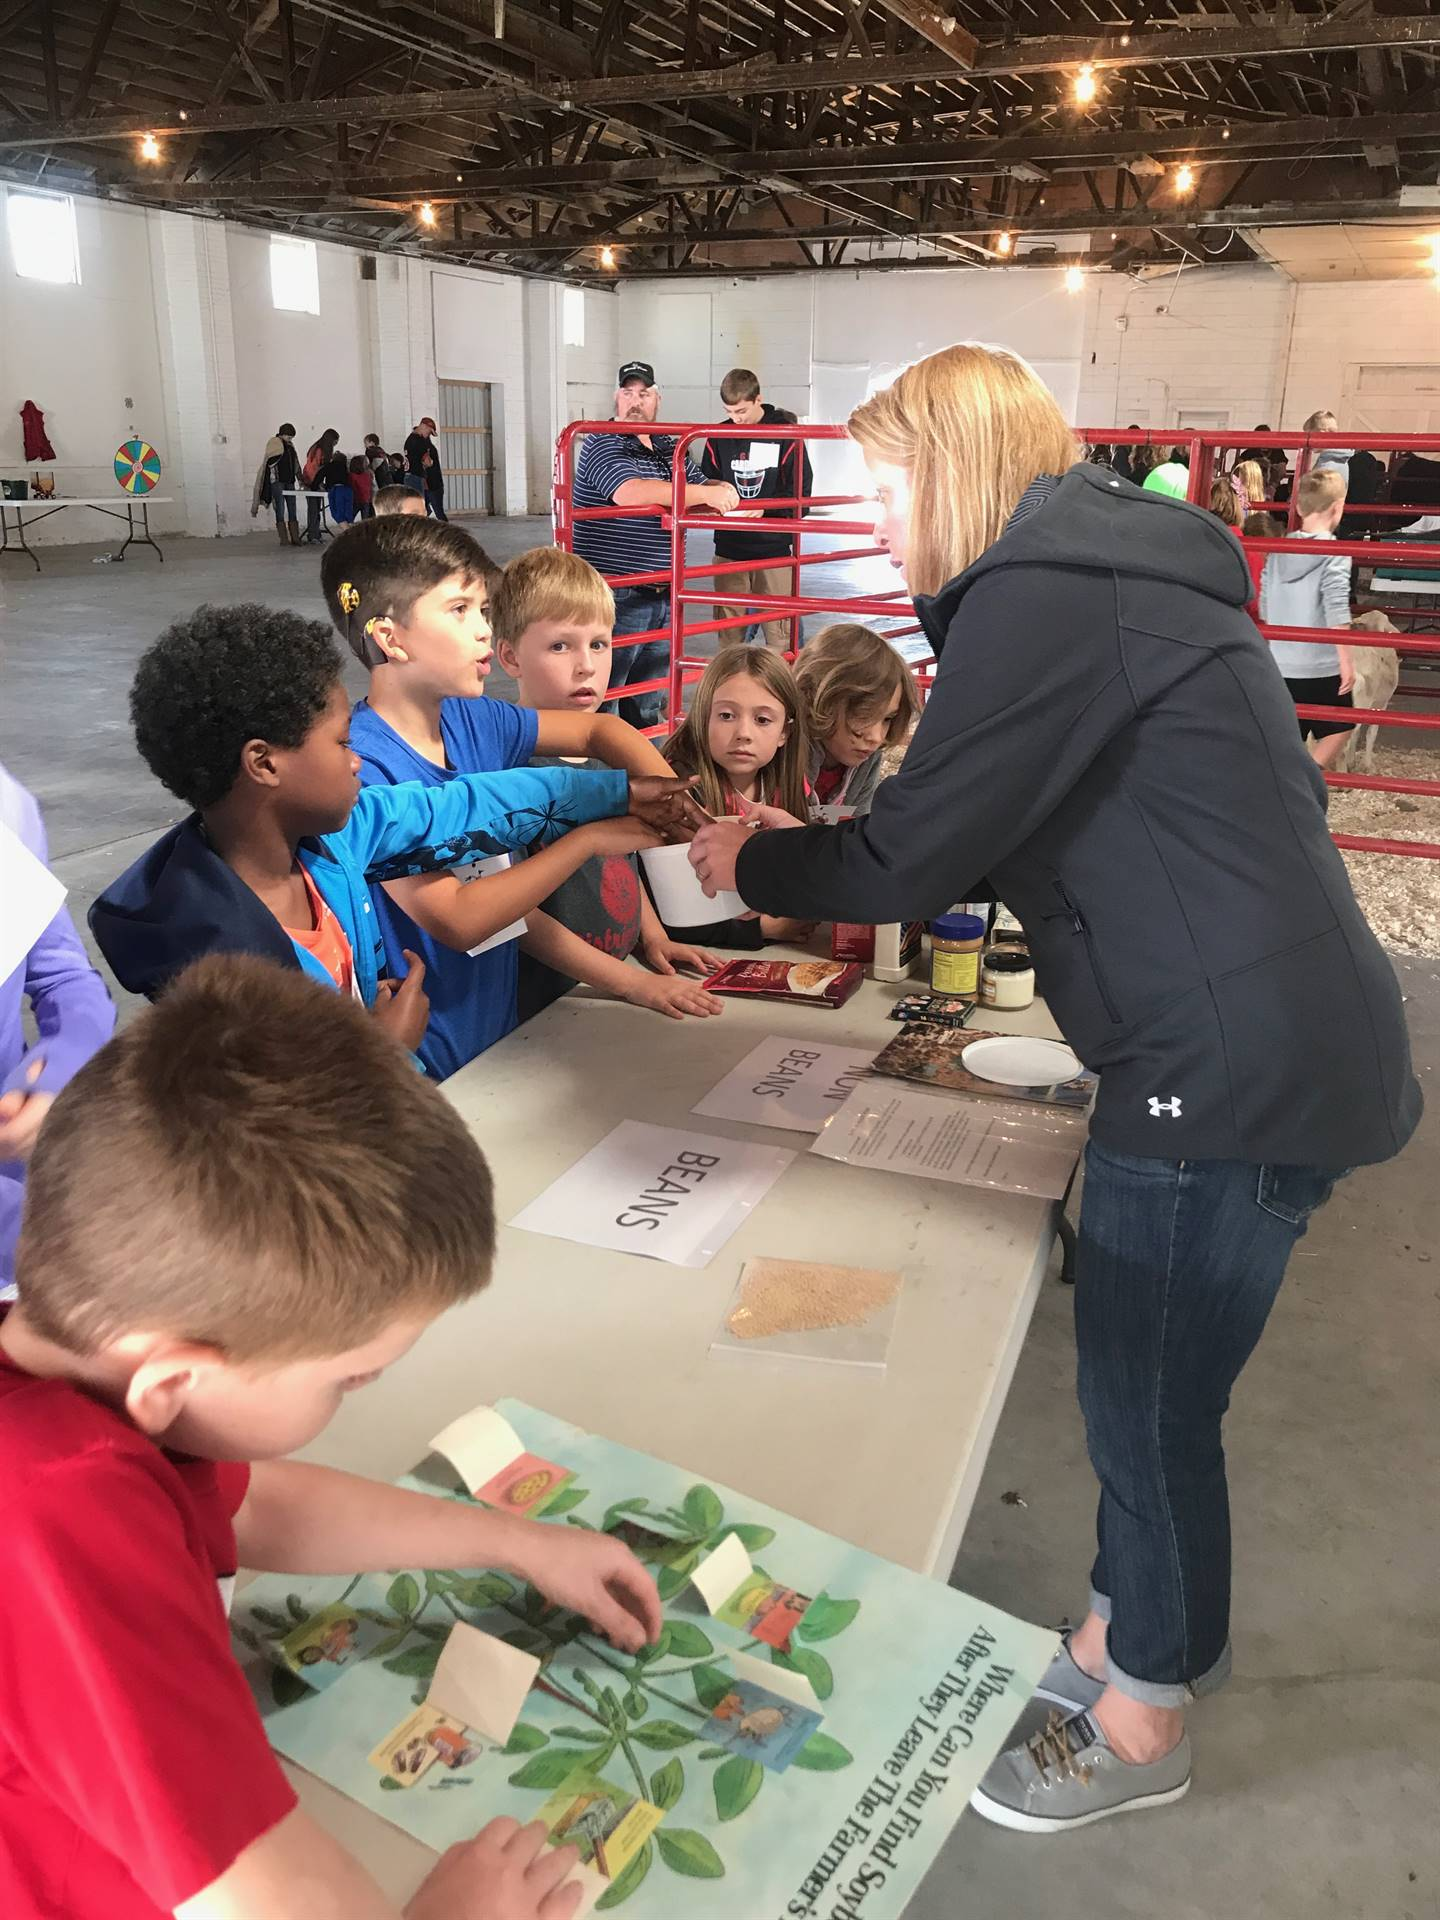 Students standing at table examining soybeans at Ag Awareness Day